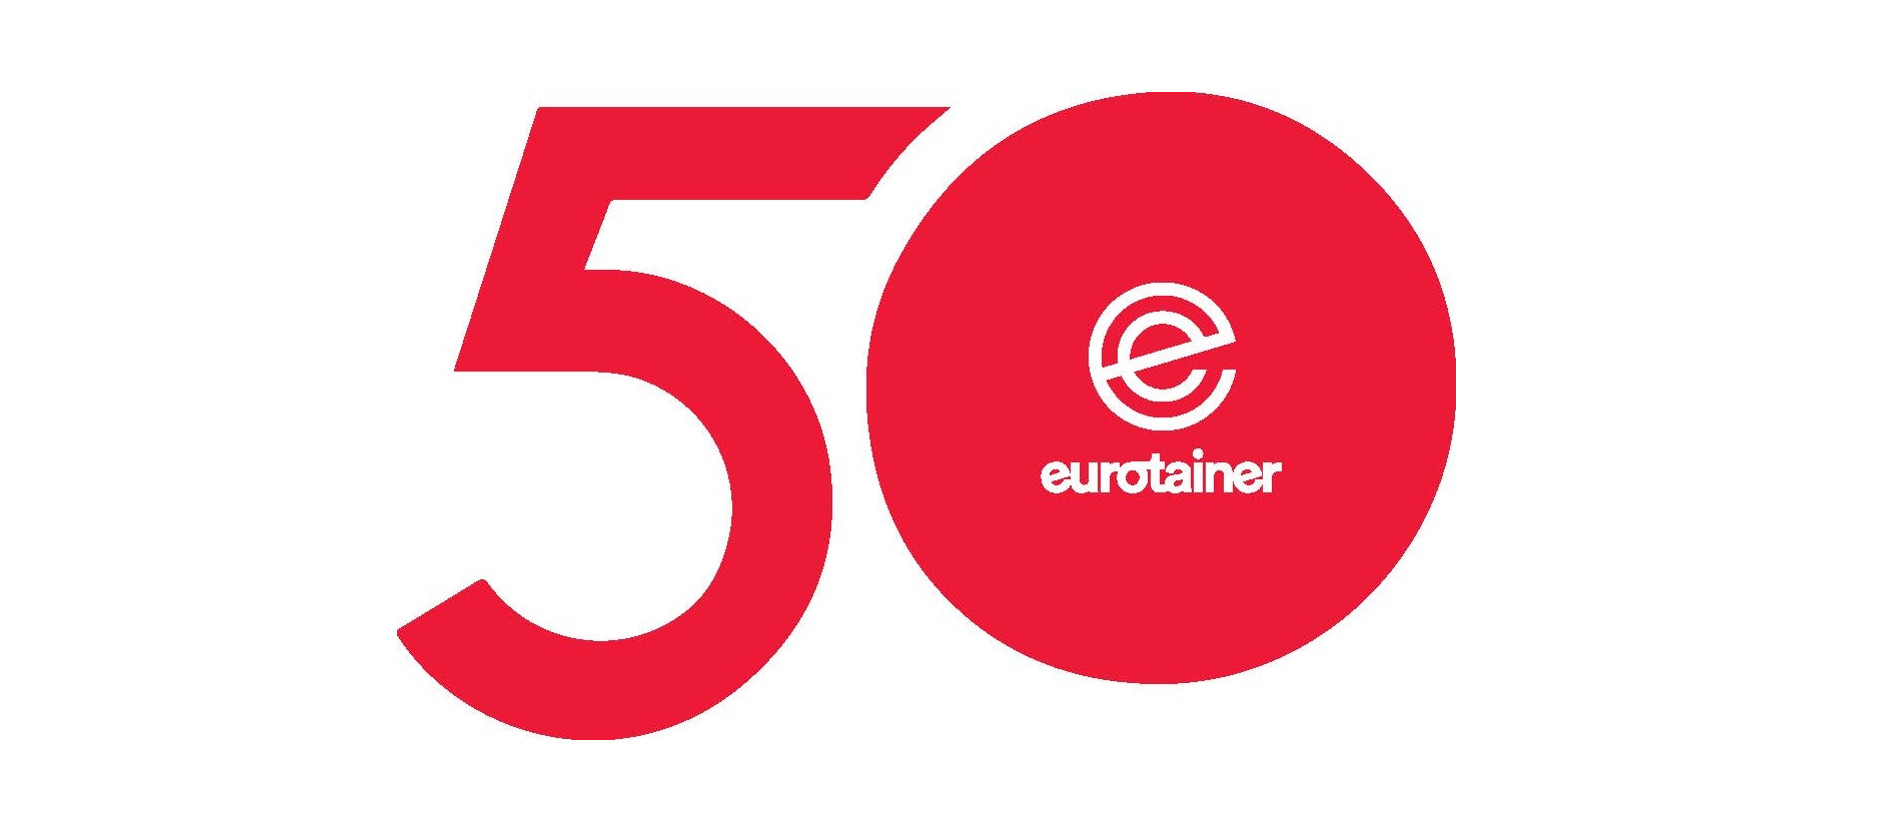 Eurotainer Celebrates 50 Years